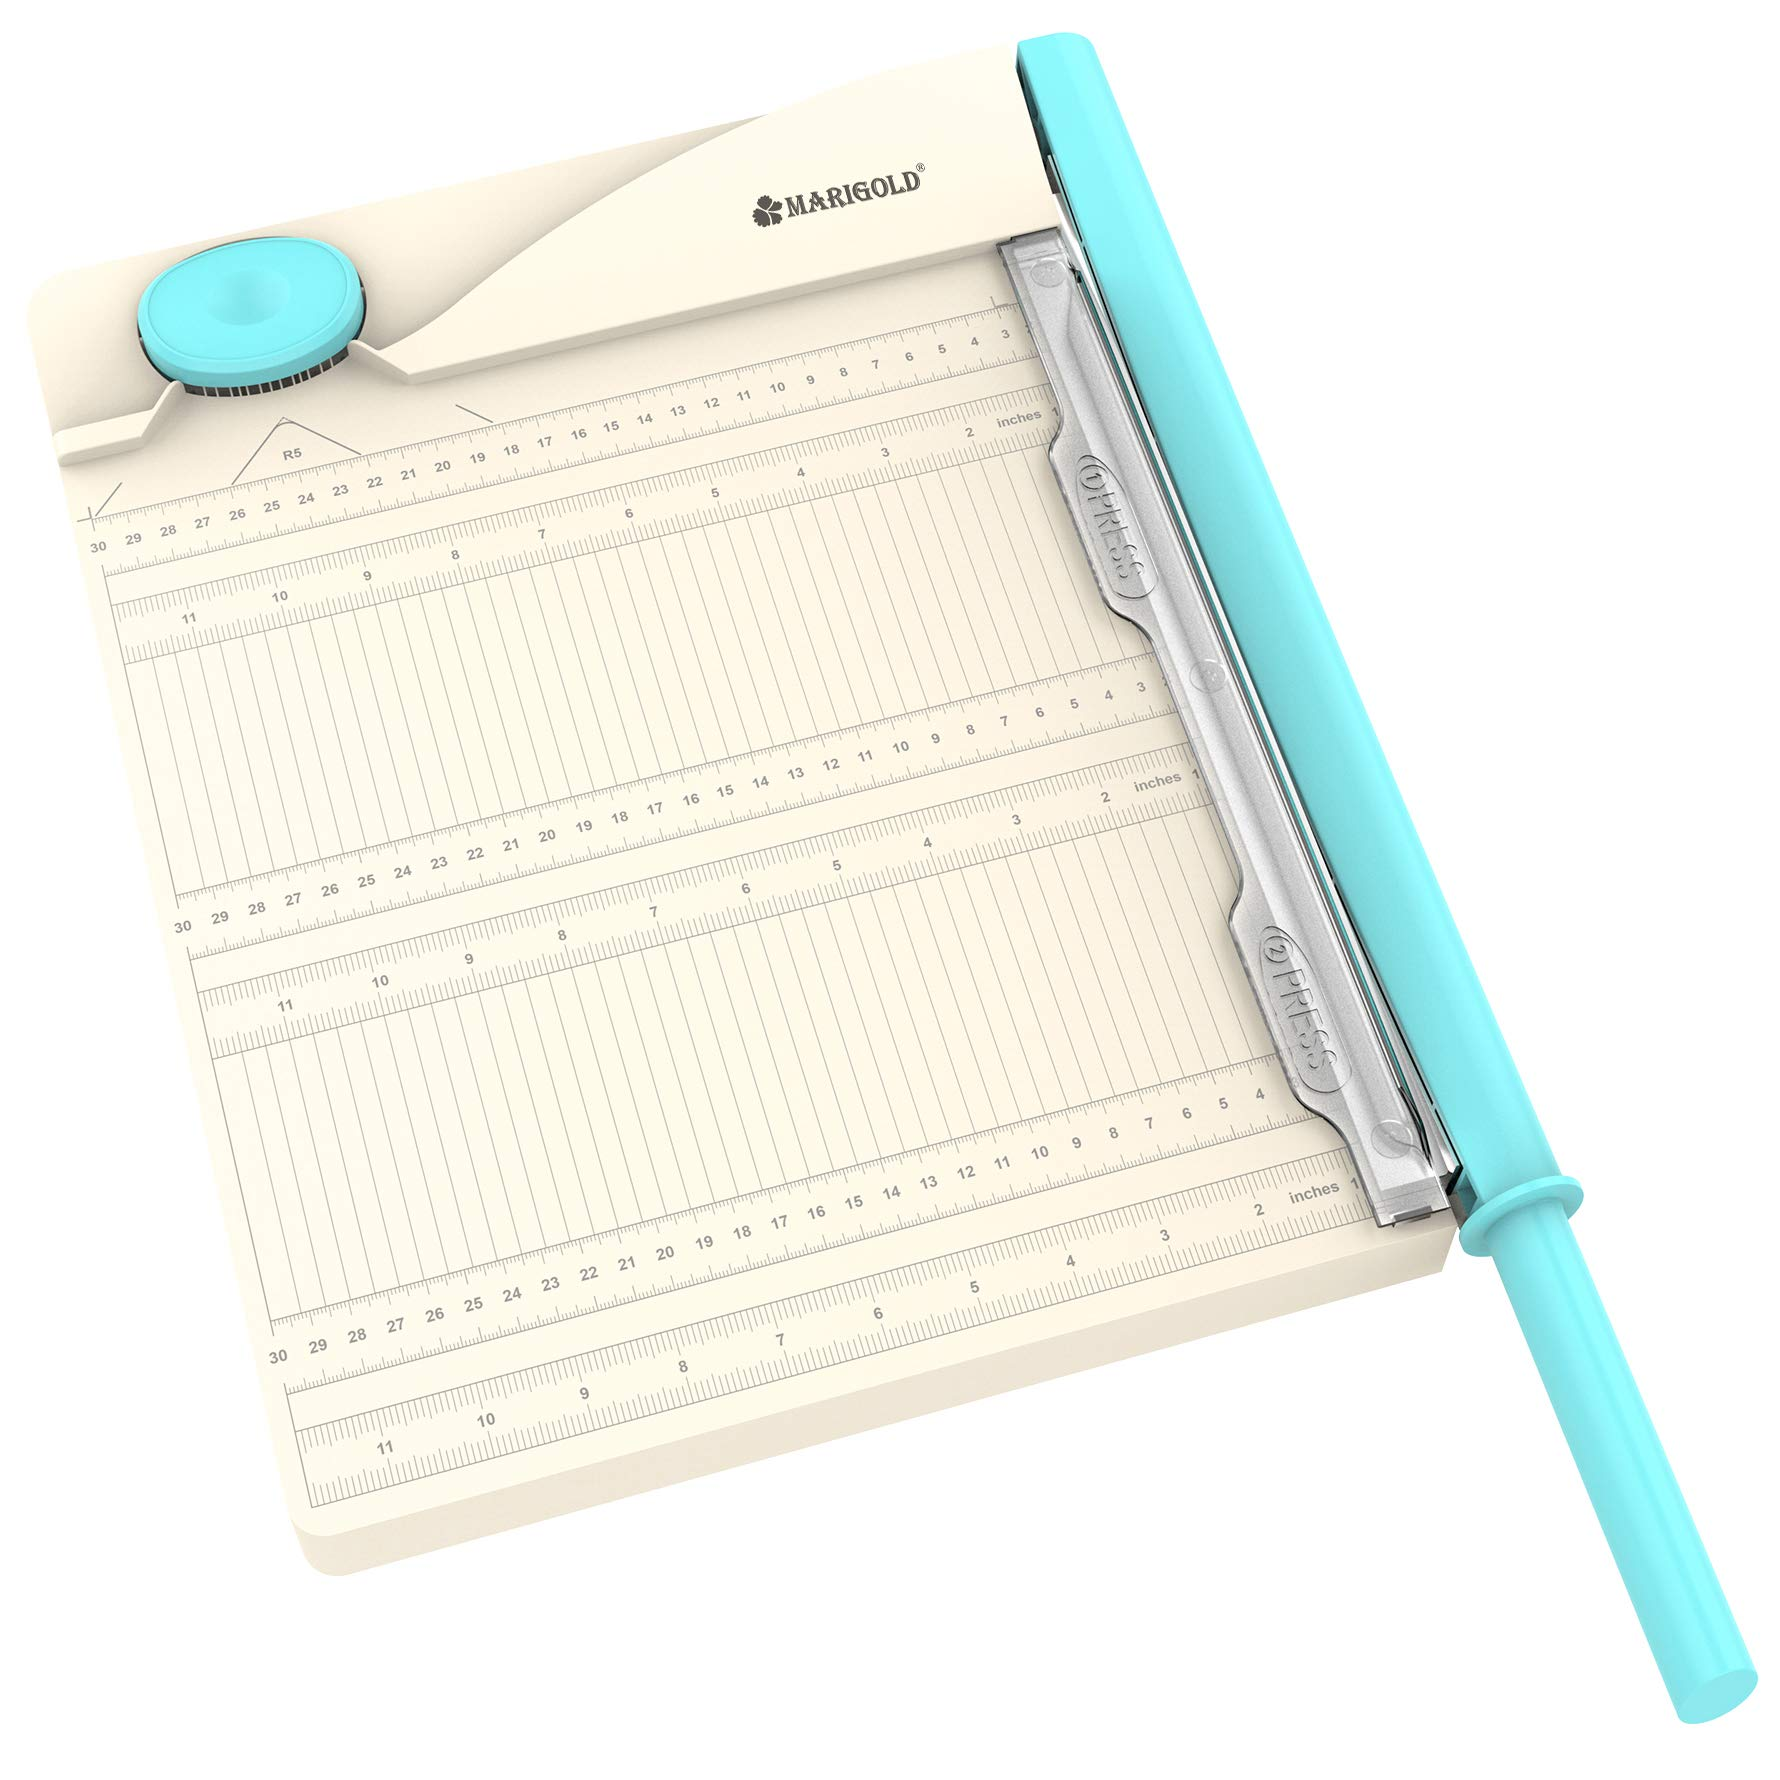 MARIGOLD Paper Cutter Corner Puncher - 12'' Paper Guillotine 2-in-1 Paper Trimmer by Marigold